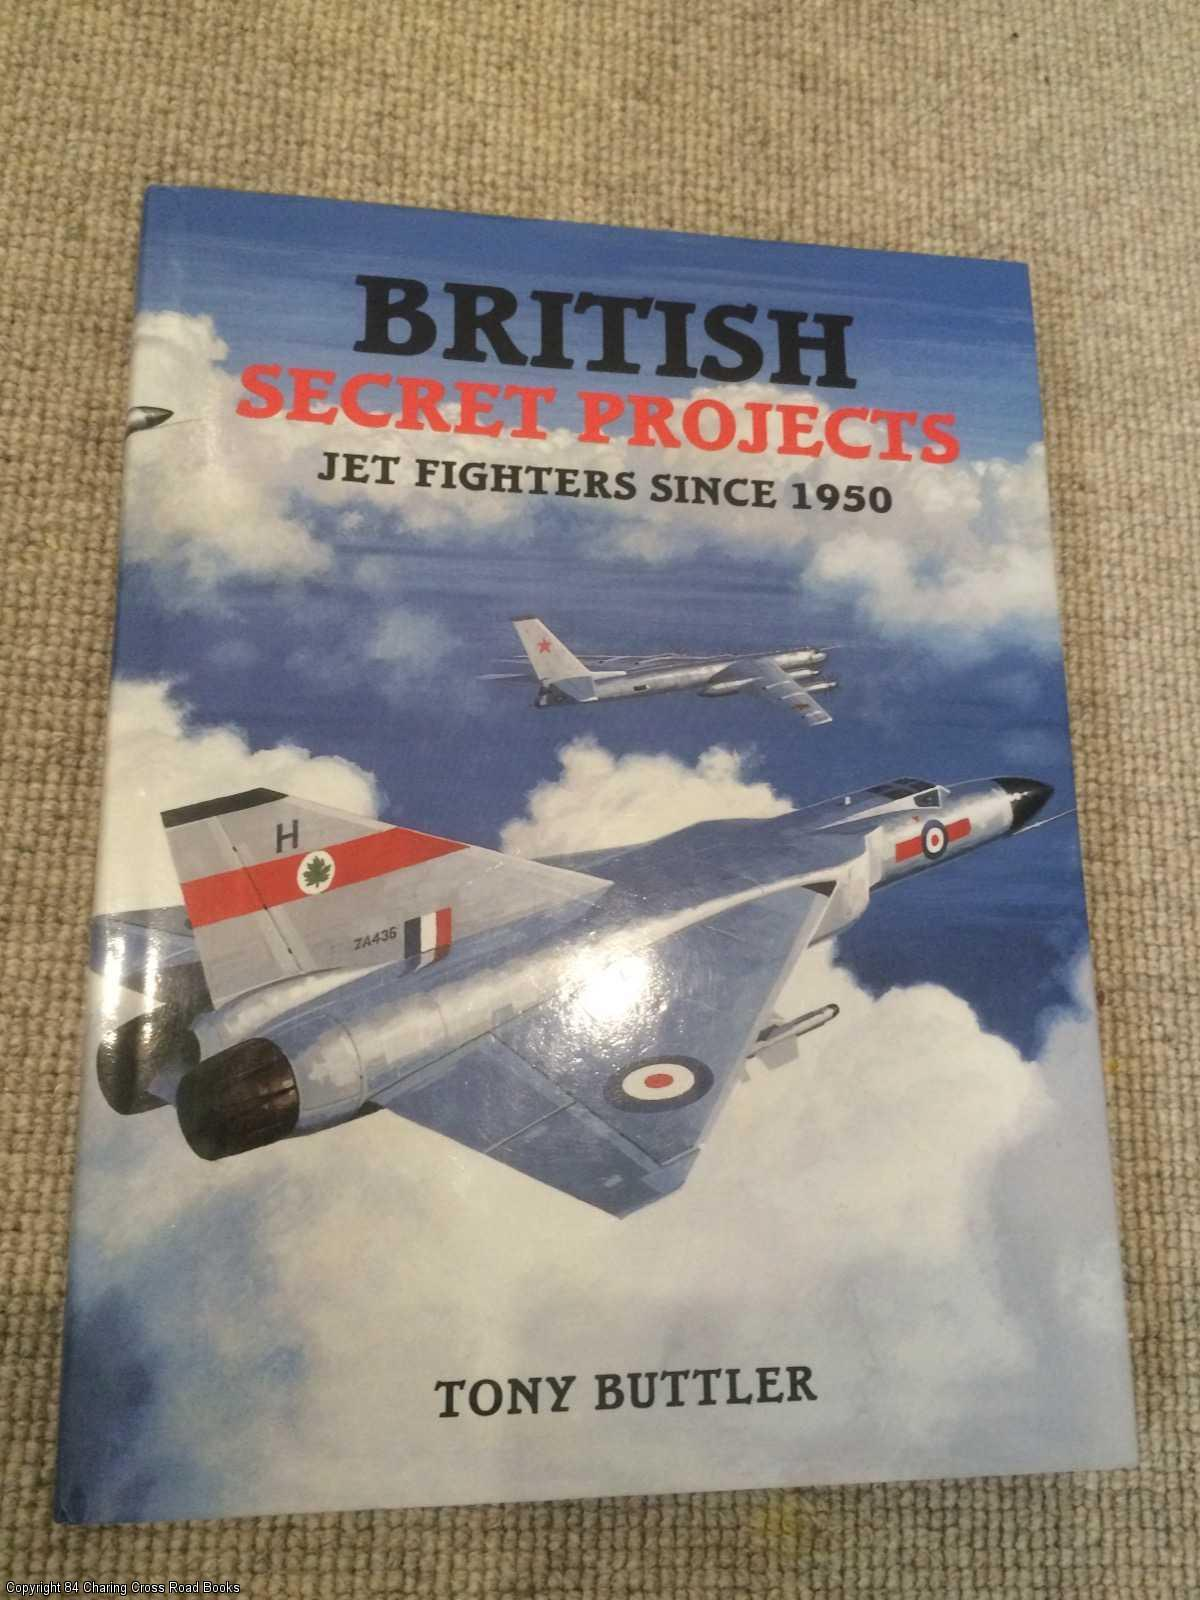 BUTTLER, TONY - British Secret Projects: Jet Fighters Since 1950